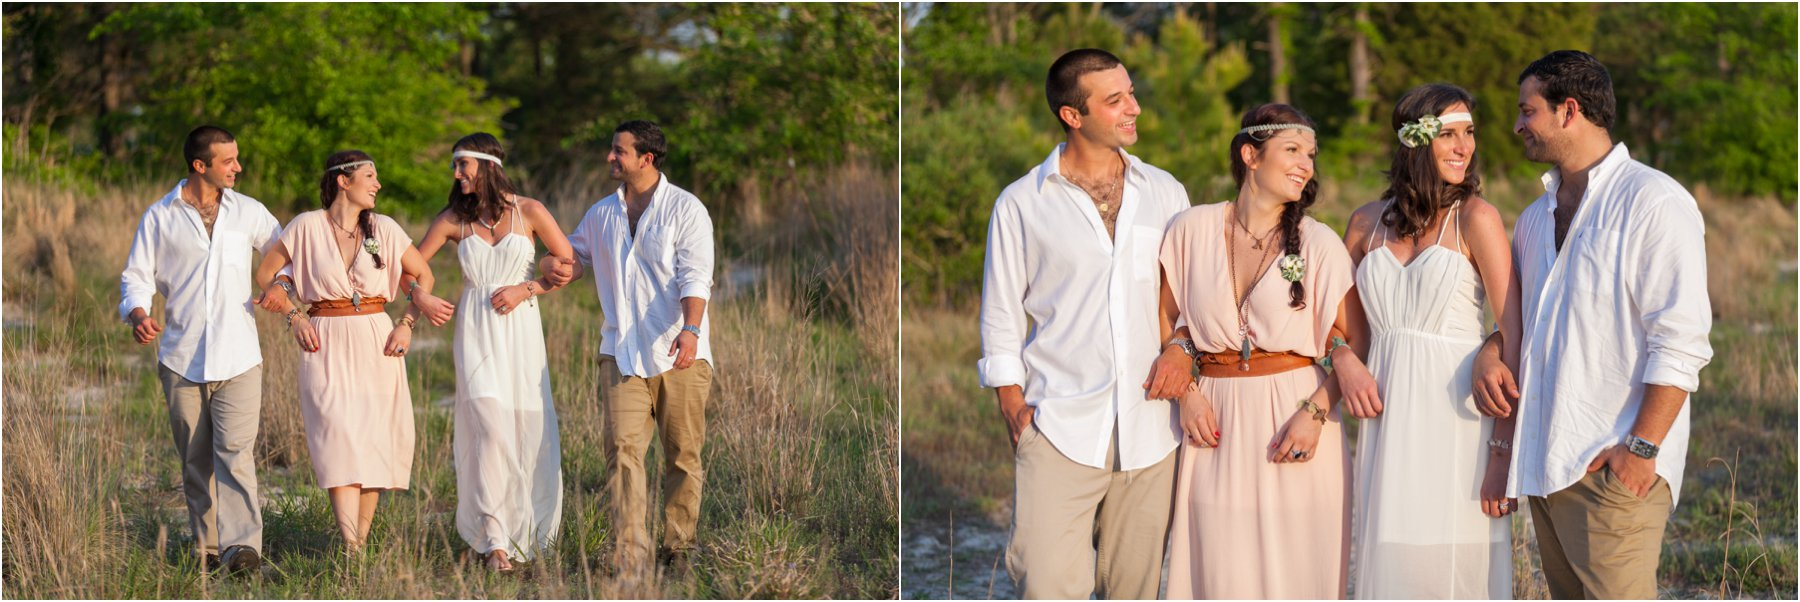 first_landing_wedding_boho_wedding_photography_virginia_Jessica_ryan_photography_0208